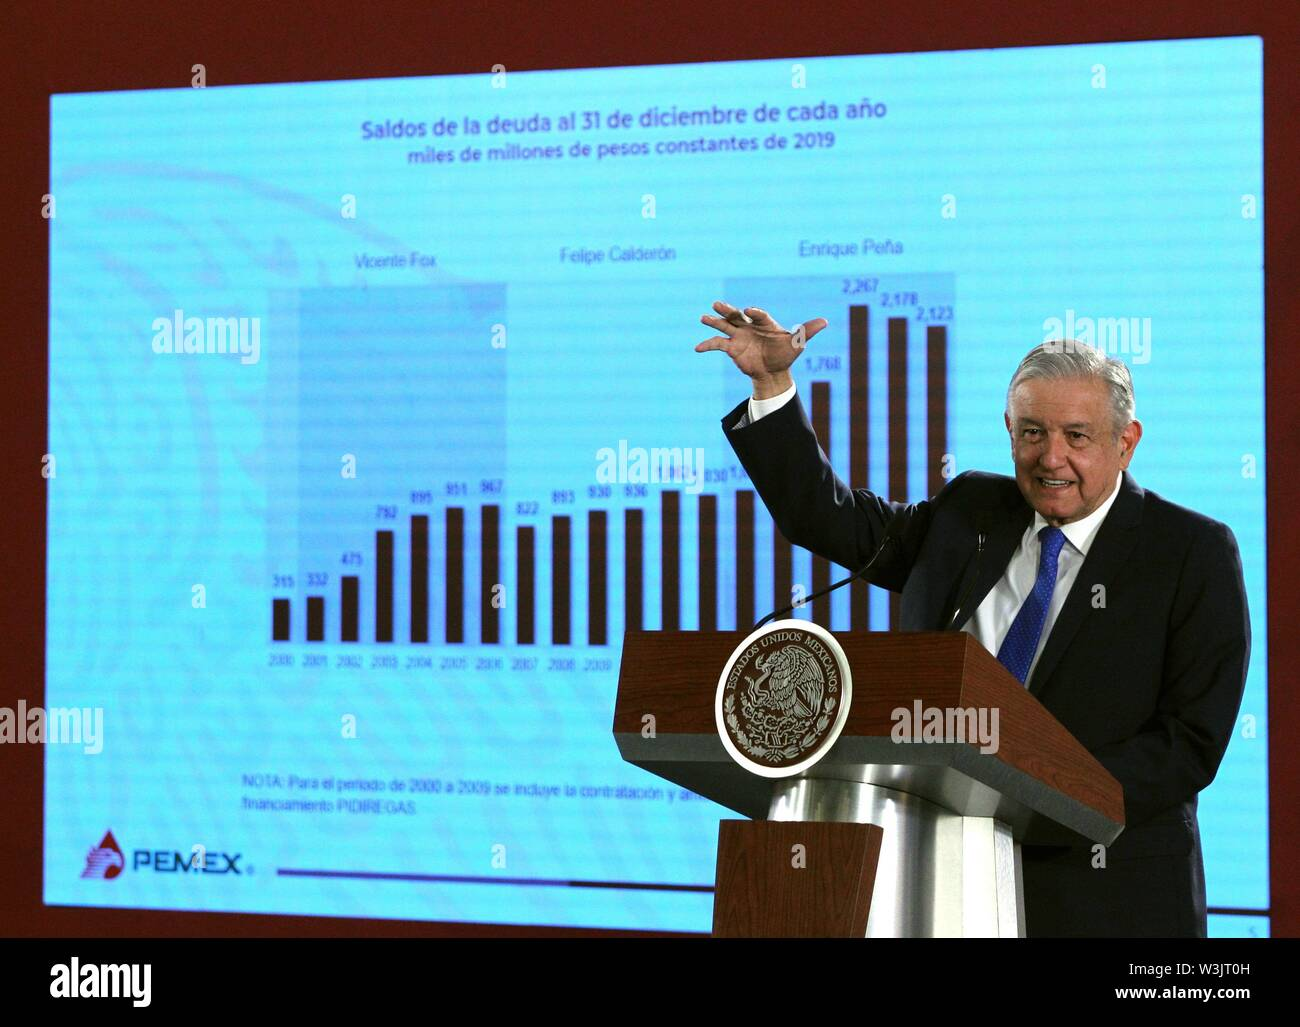 Mexican President Andres Manuel Lopez Obrador speaks during a press conference at the National Palace in Mexico City, Mexico, 16 July 2019. The Mexican Government presented the Business Plan of Petroleos Mexicanos (Pemex), that through a reduction of up to 11% of the tax burden and a multi-million dollar investment seeks to refloat the state oil company, suffering from debt and a fall in production and refining. EFE/ Mario Guzman Stock Photo